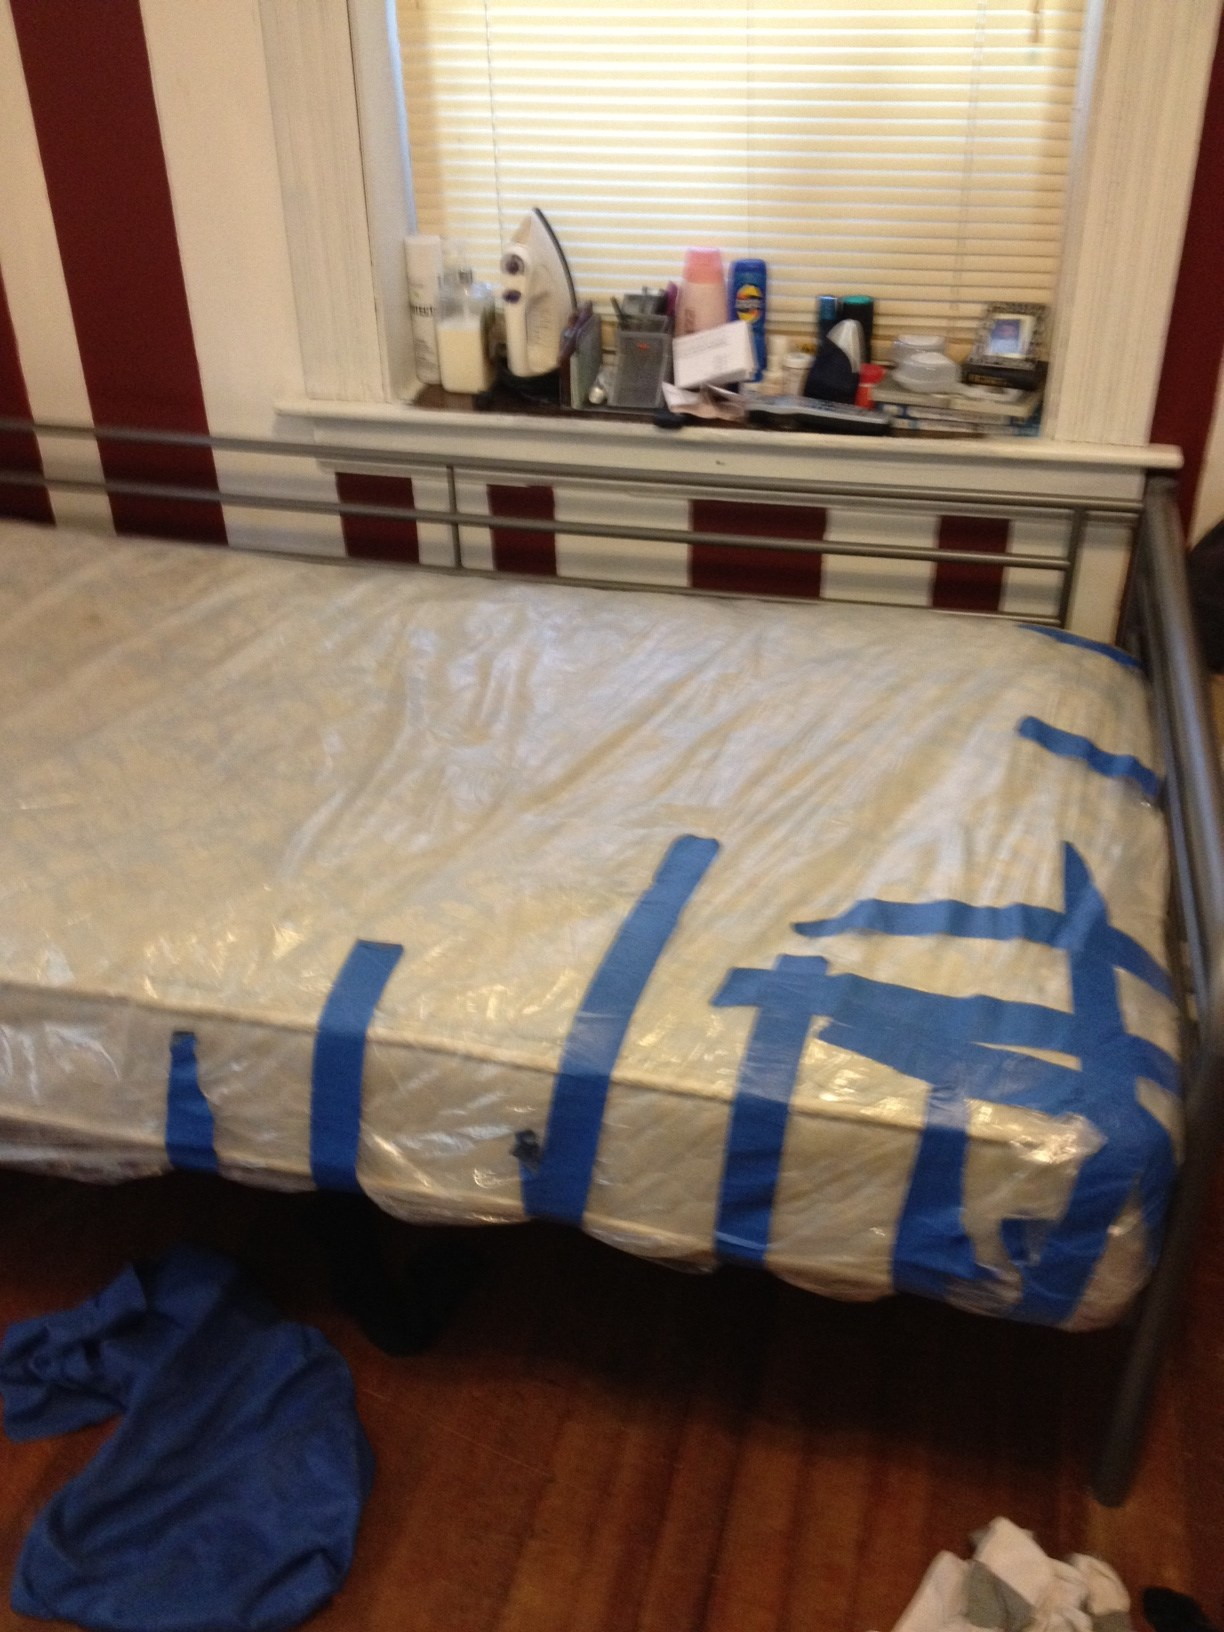 Bed Bugs Mattress Cover Bed Bug Mattress Covers A Right Way And A Wrong Way Envirocare